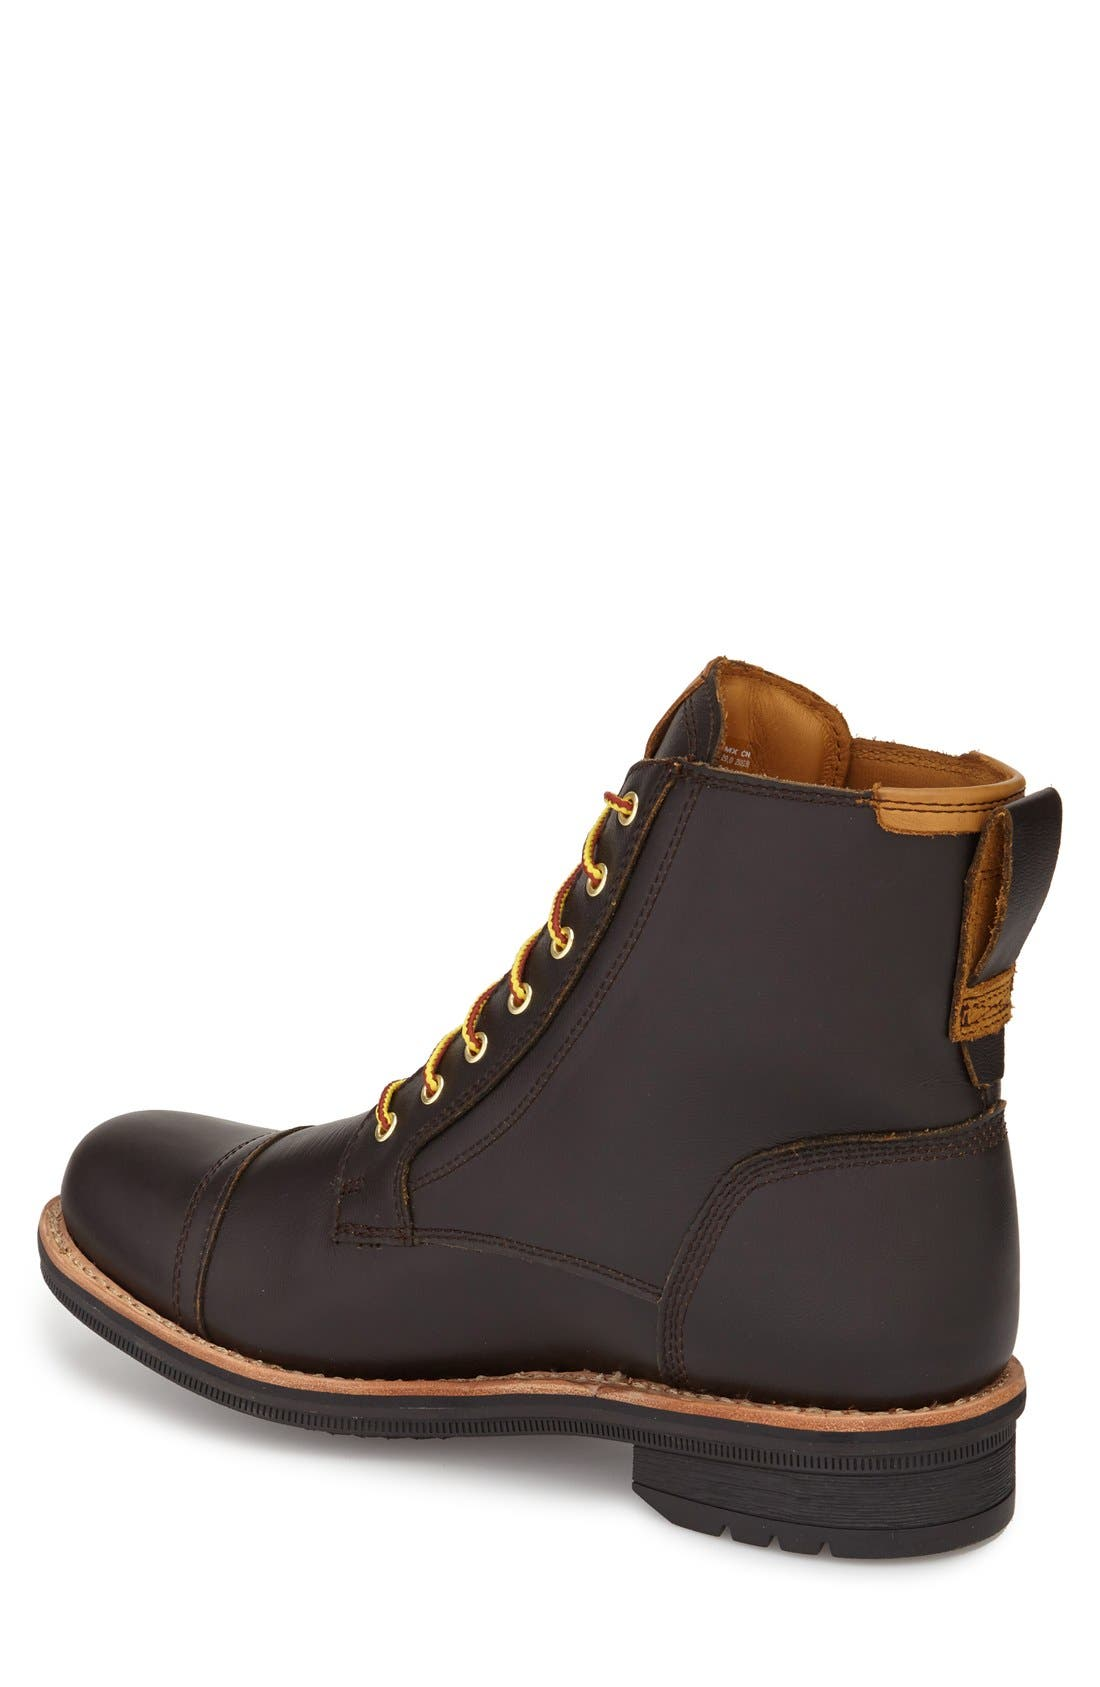 TIMBERLAND,                             'Willoughby' Cap Toe Boot,                             Alternate thumbnail 2, color,                             200